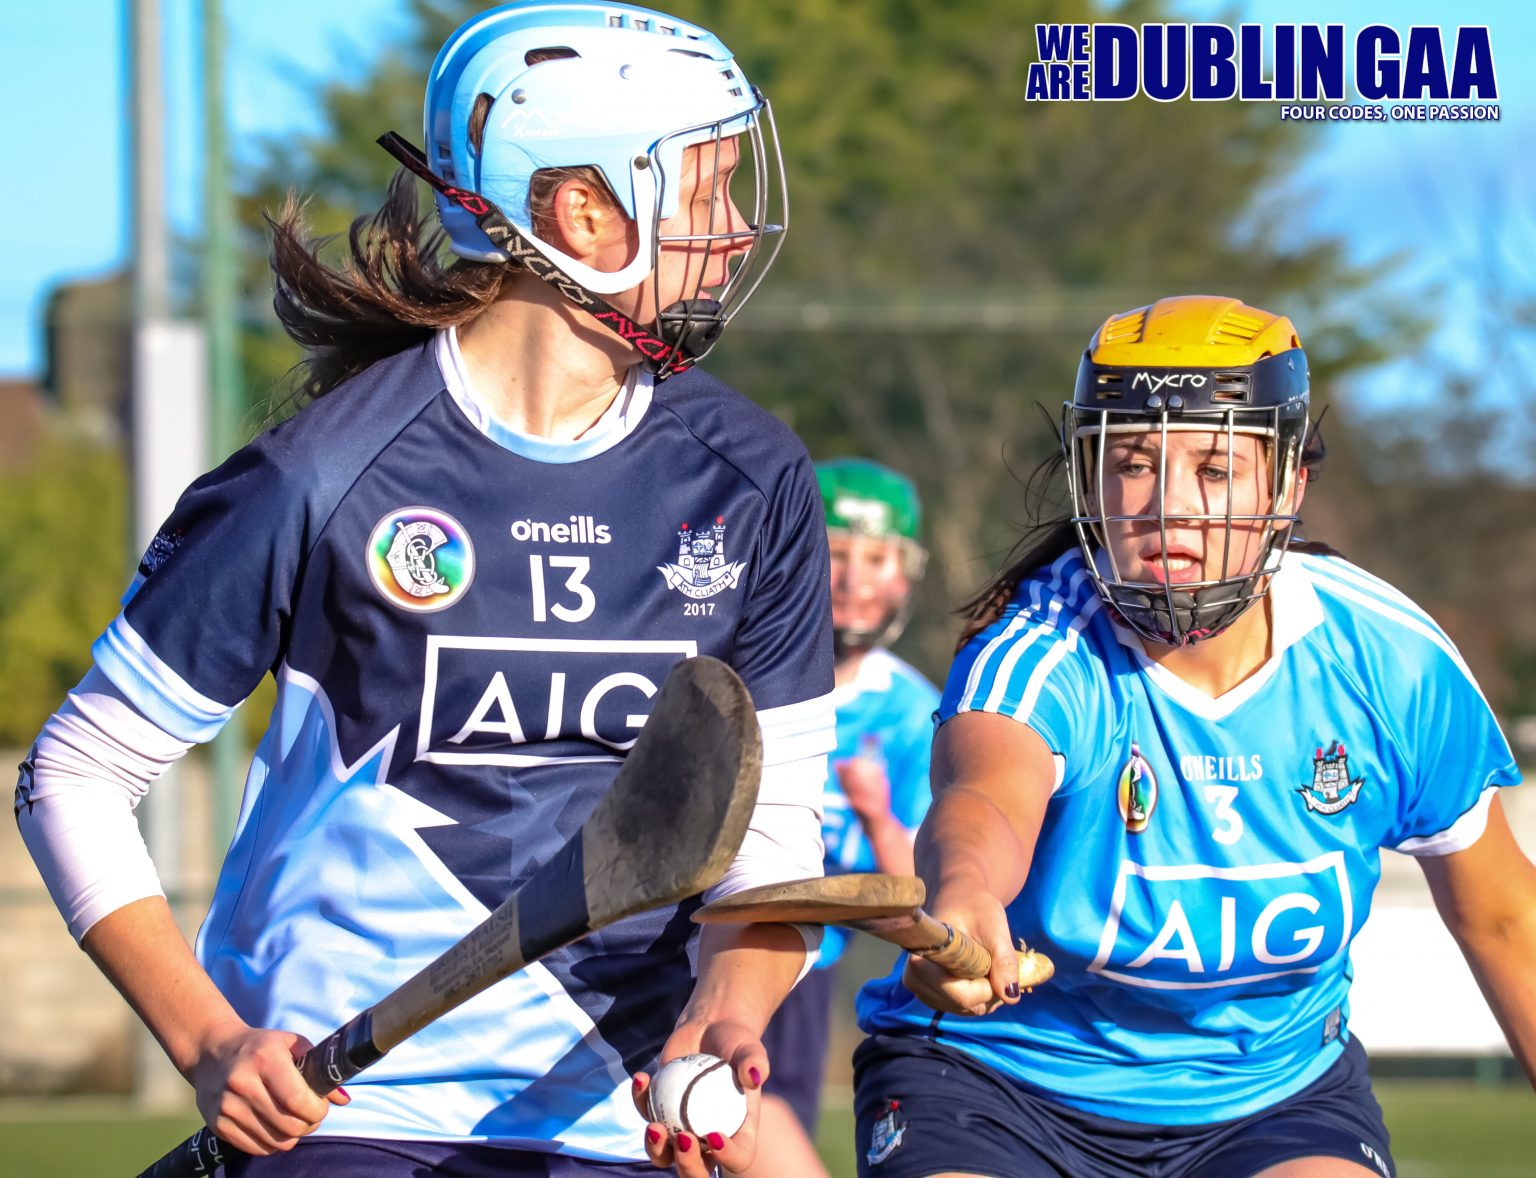 Hannah O'Dea From The Dubs Stars Being Tackled By Dublin's Laura Walsh